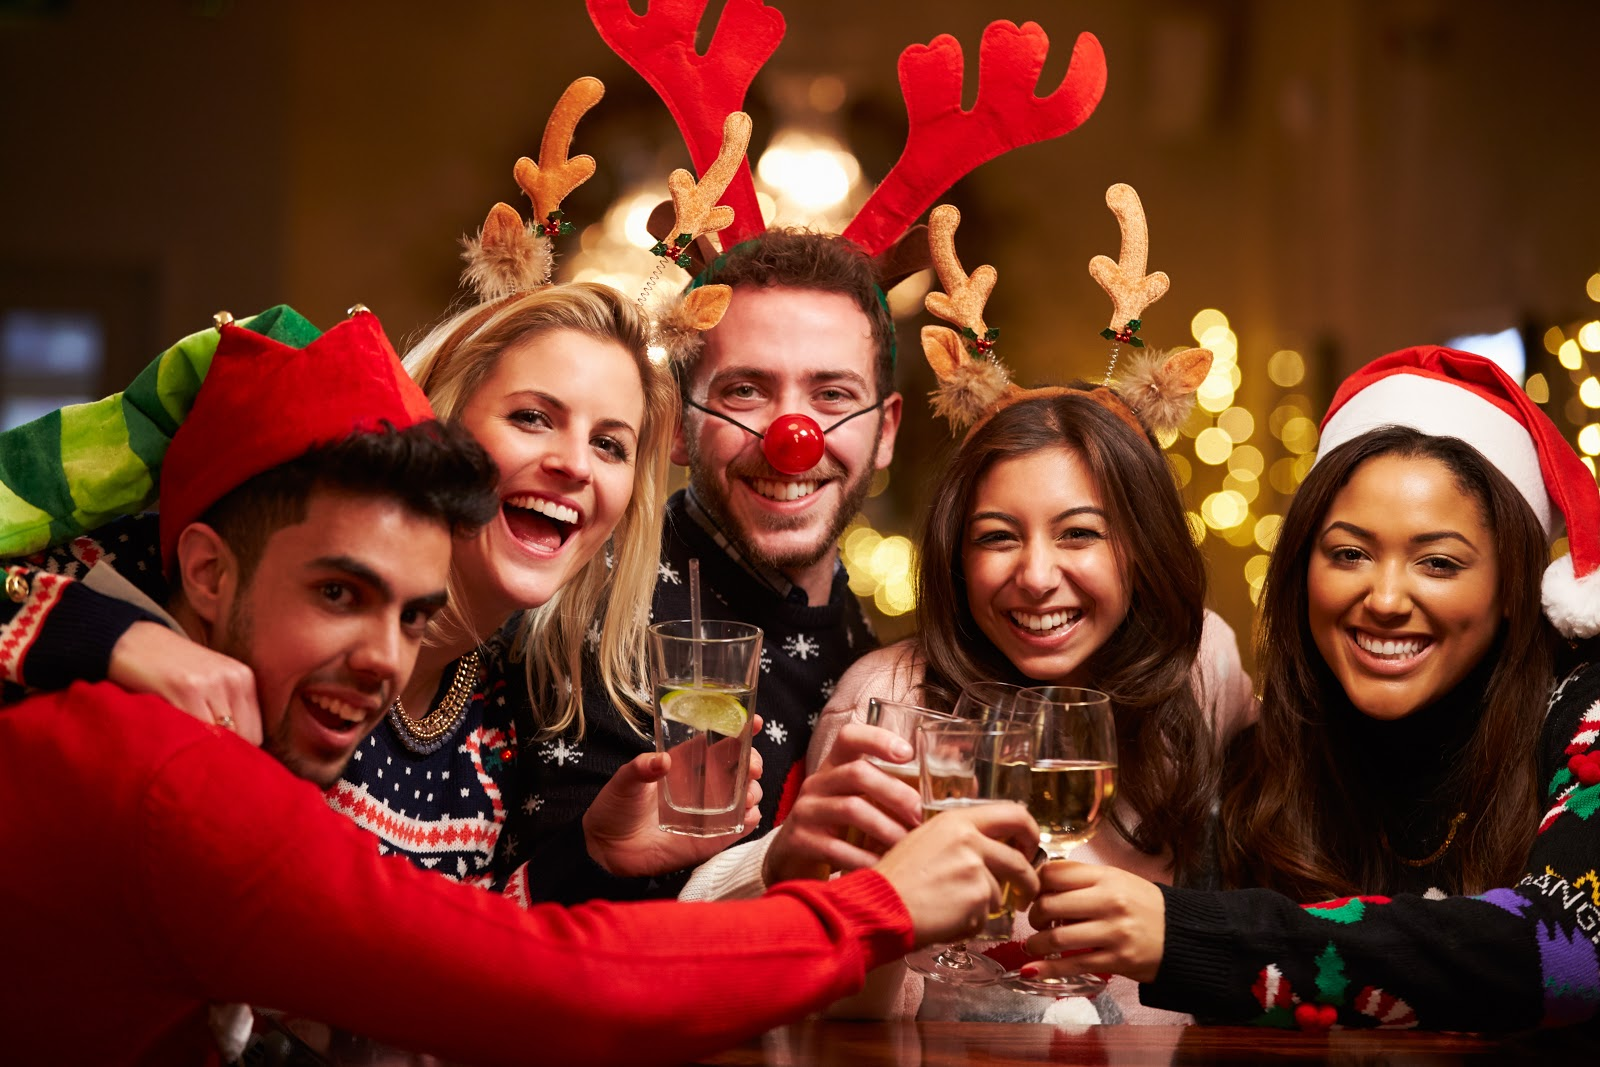 Christmas party ideas: A group wears reindeer antlers and holds up their glasses